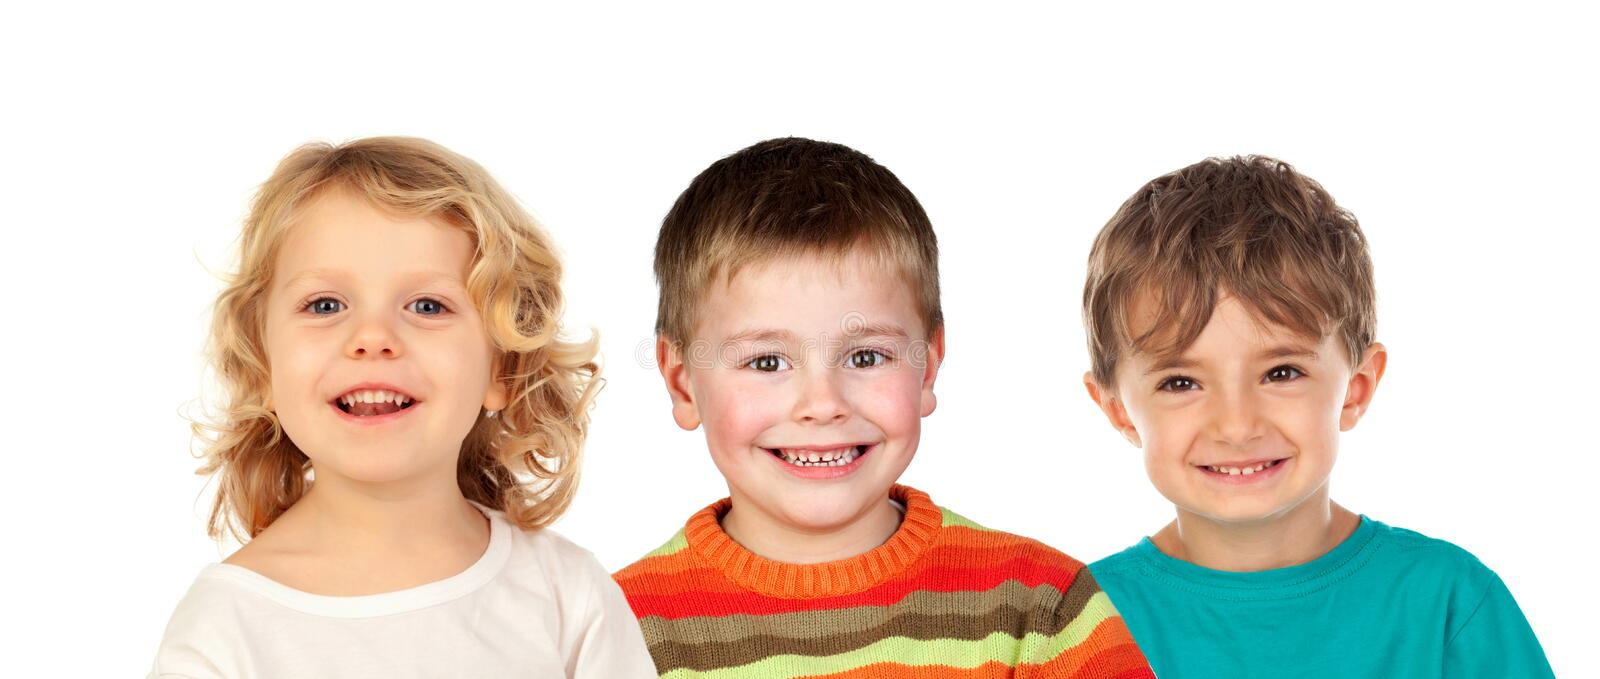 Funny blond brothers royalty free stock image